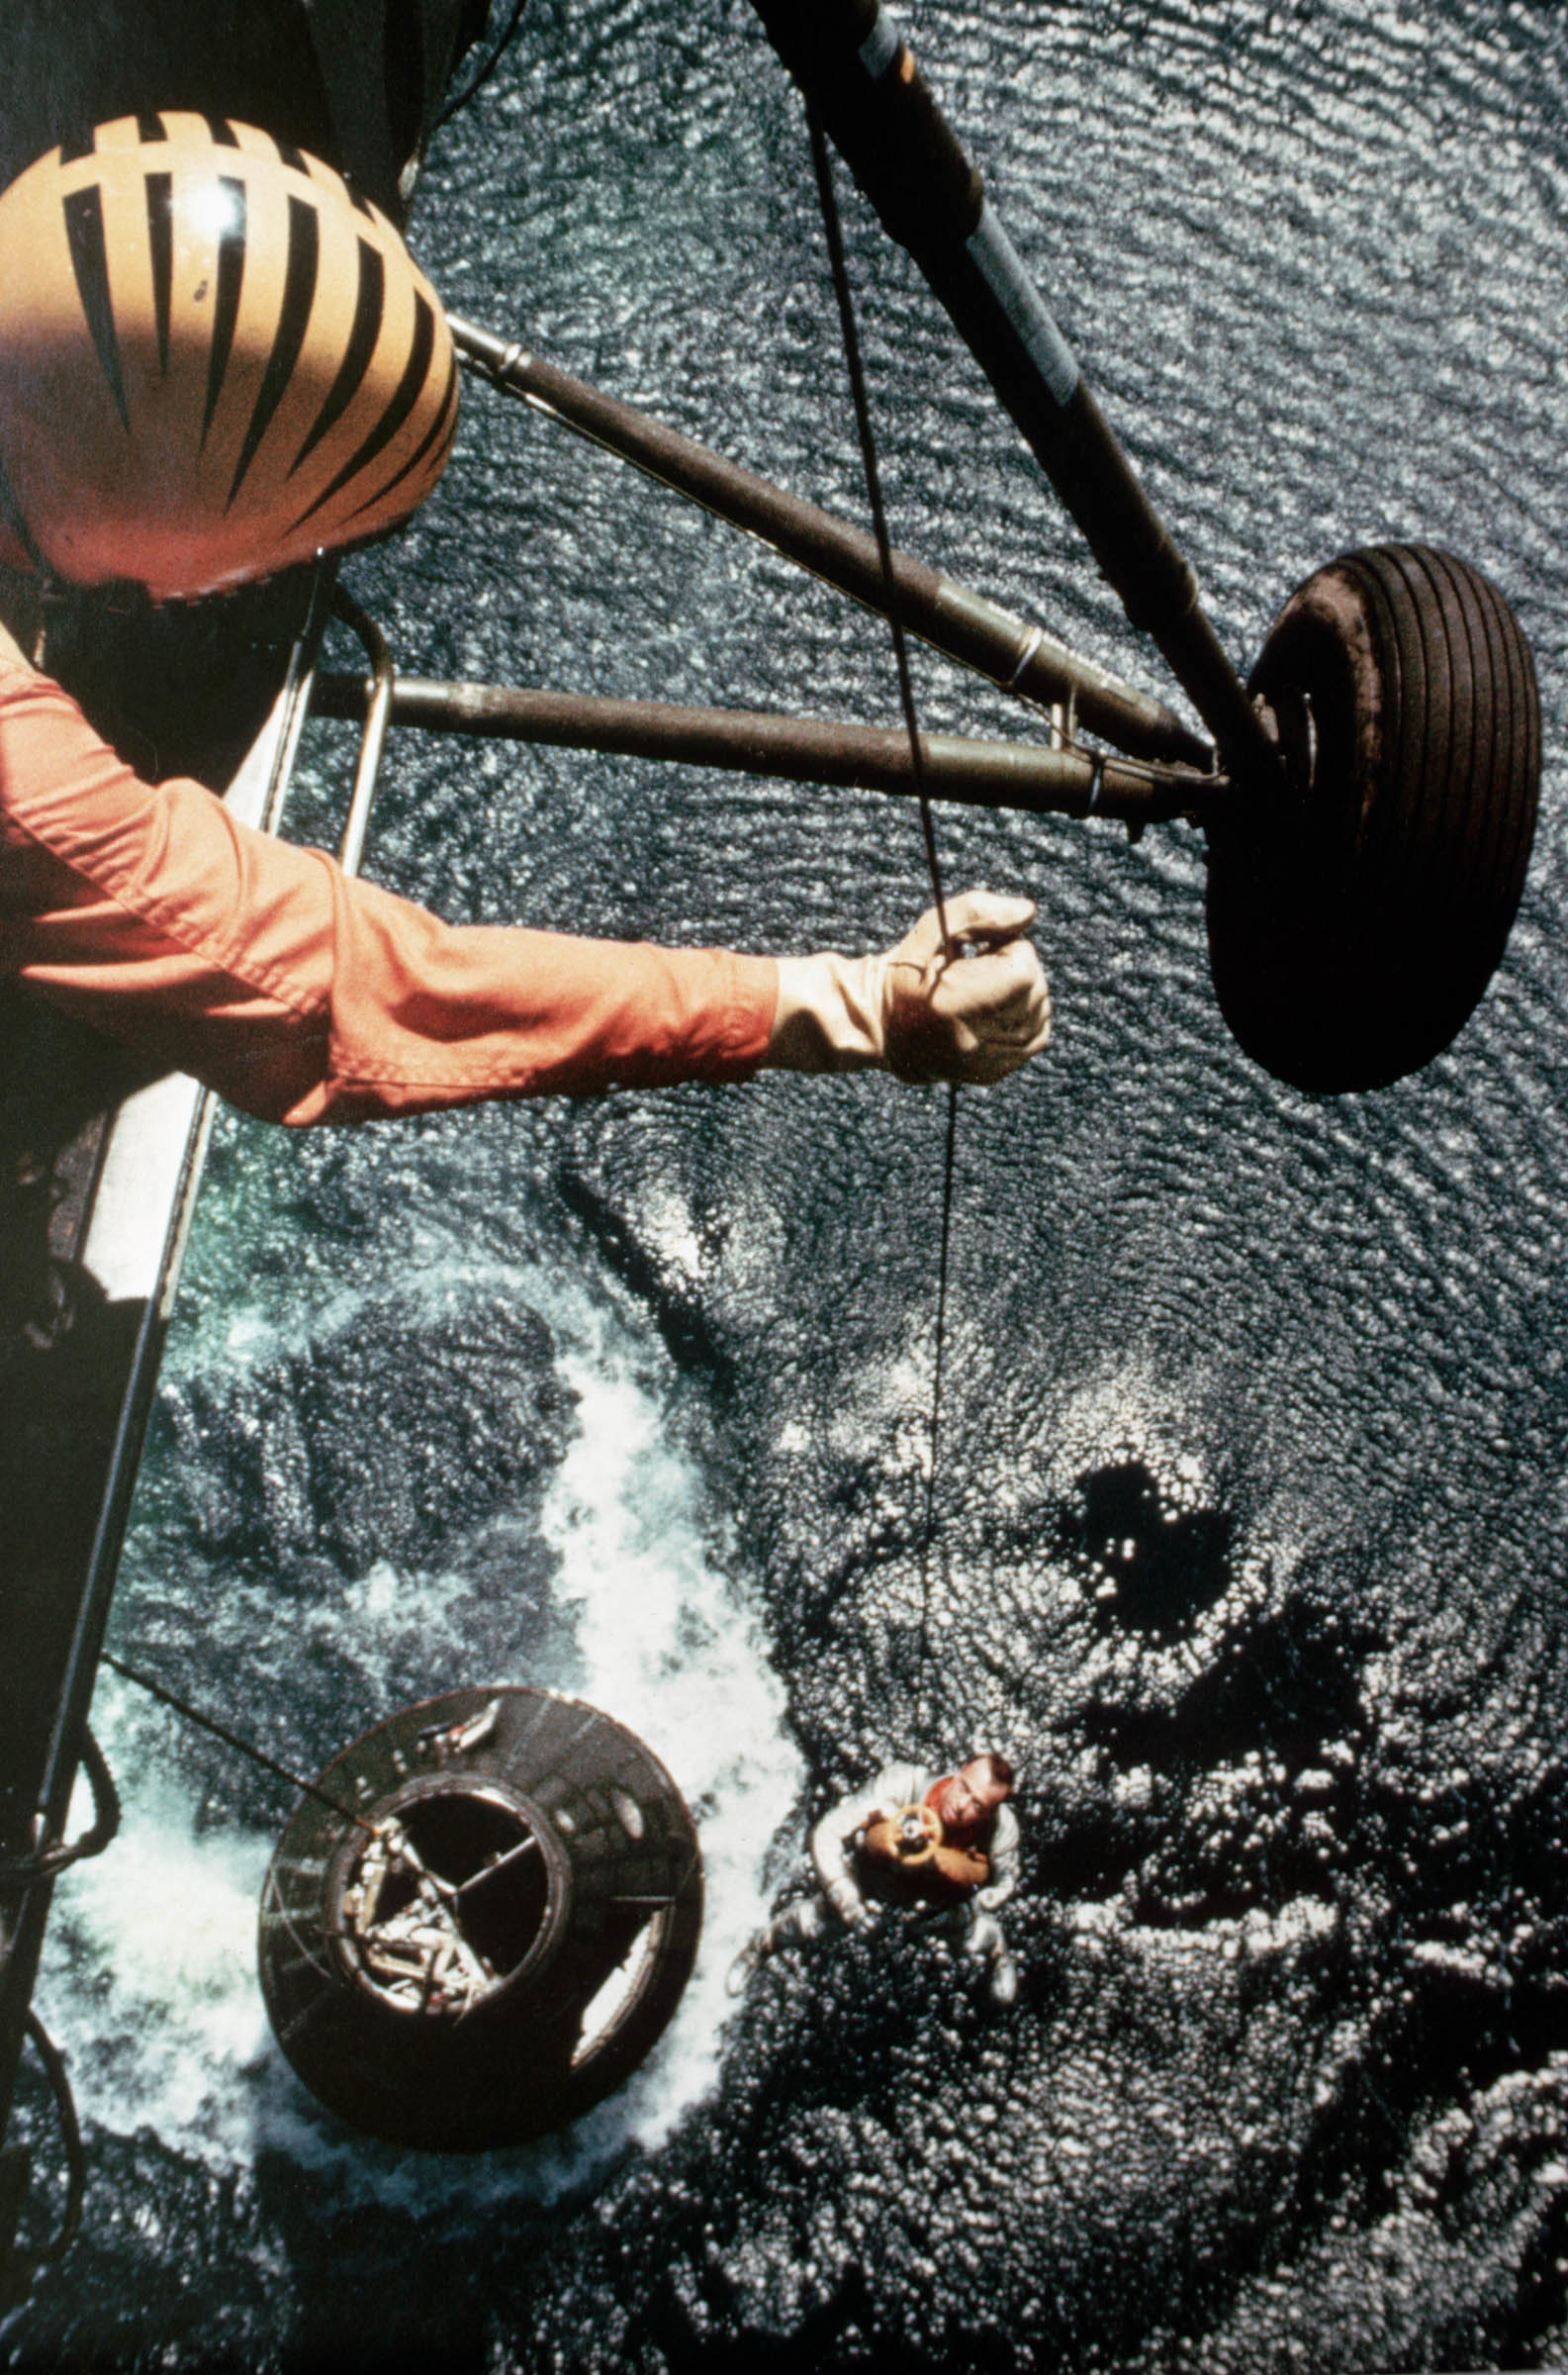 1961 A helicopter lifts Alan Shepard from the Freedom 7 spacecraft over the Atlantic Ocean east of Cape Canaveral.